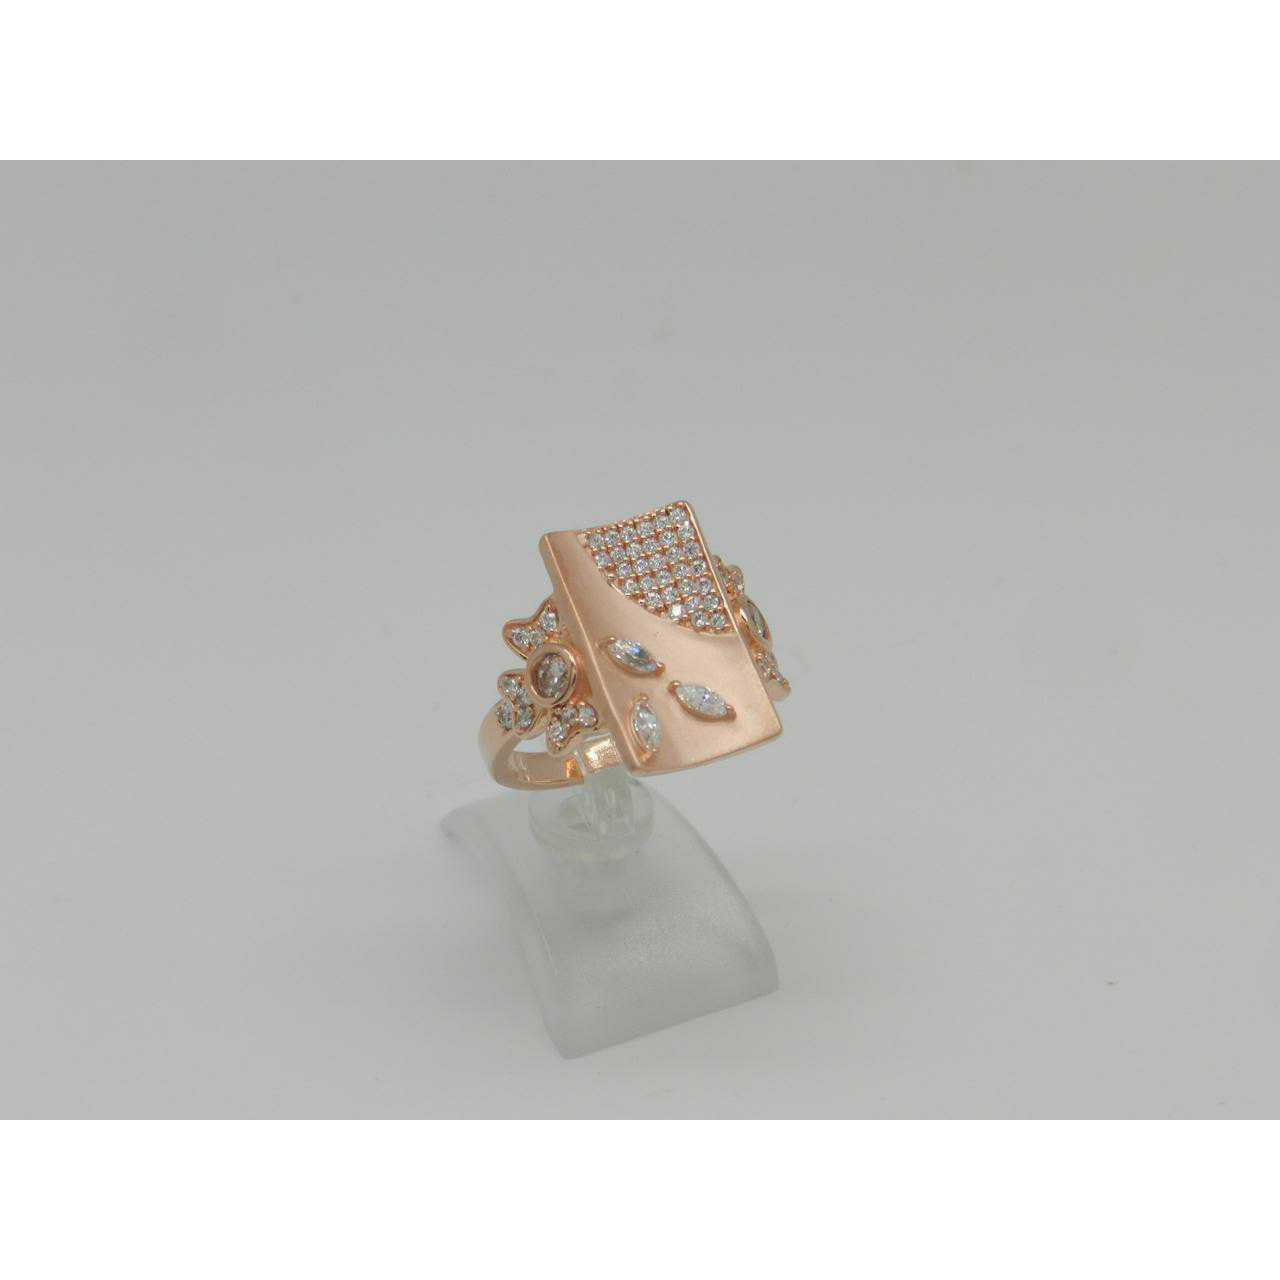 92.5 Sterling Silver Jents Ring Ms-4056